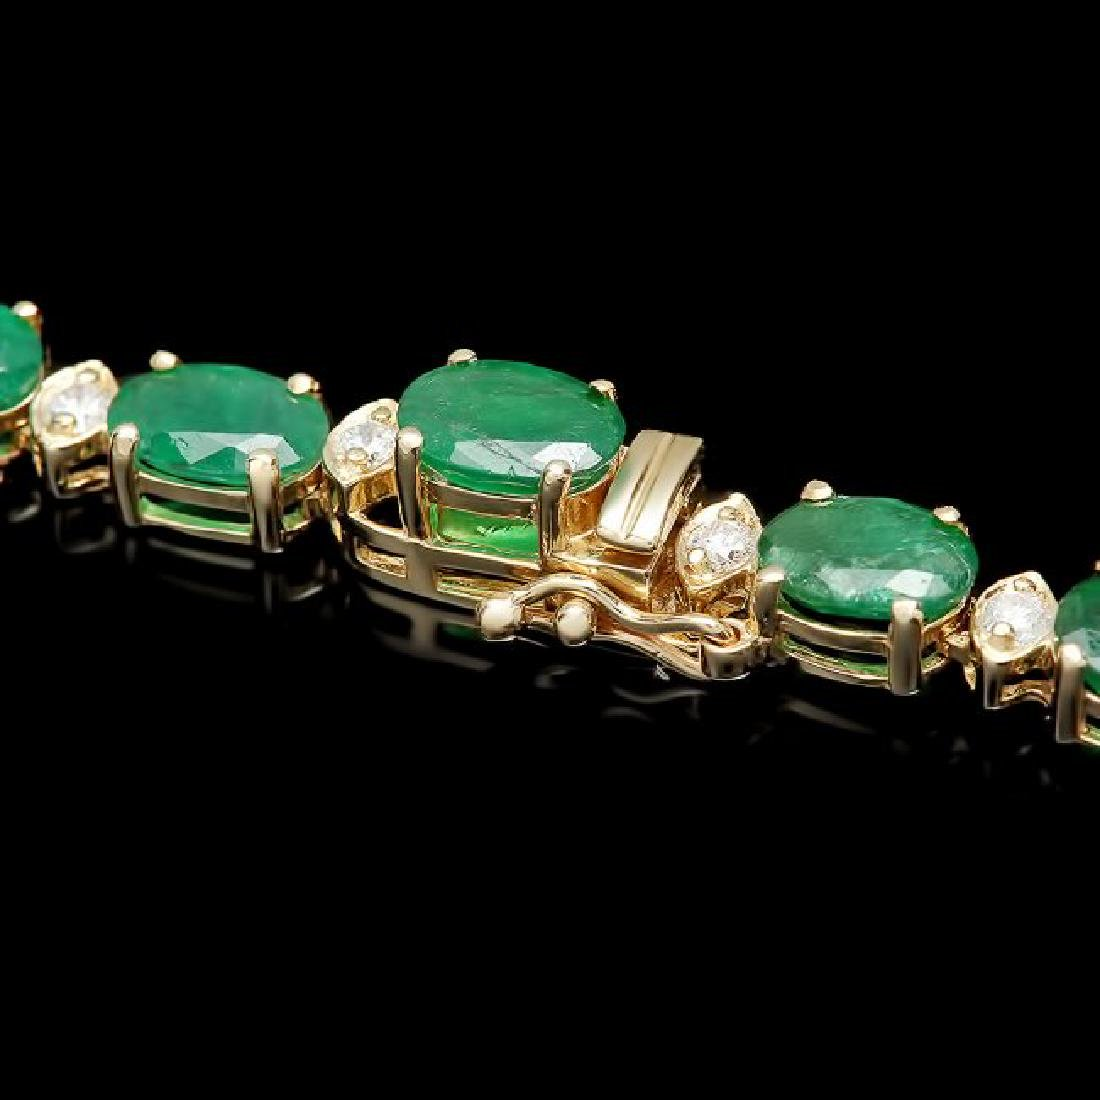 14k Gold 24.25ct Emerald 2.00ct Diamond Necklace - 3